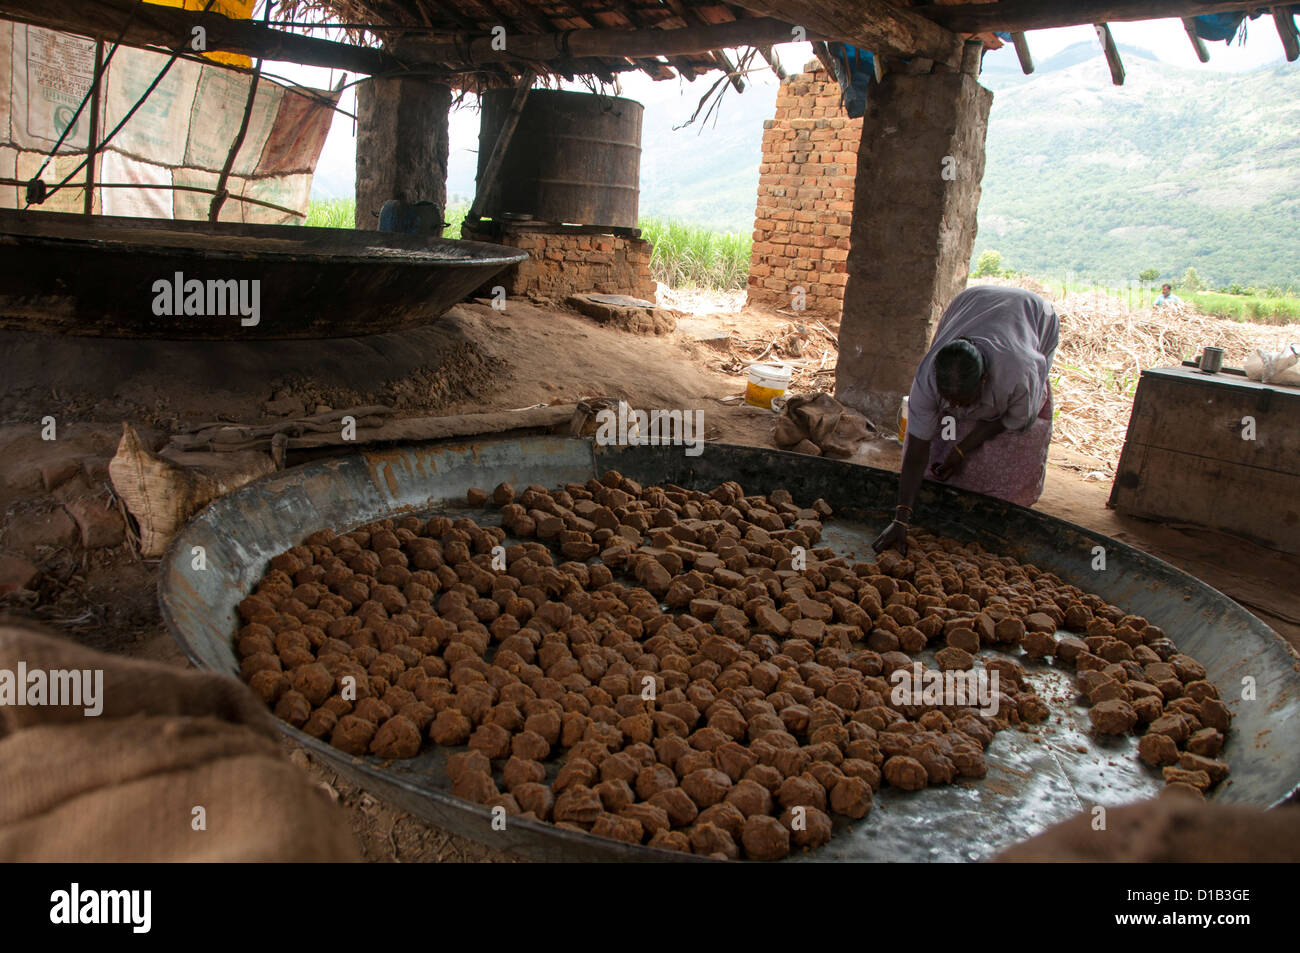 Indian jaggery production, making jaggery balls from sugar cane juice - Stock Image